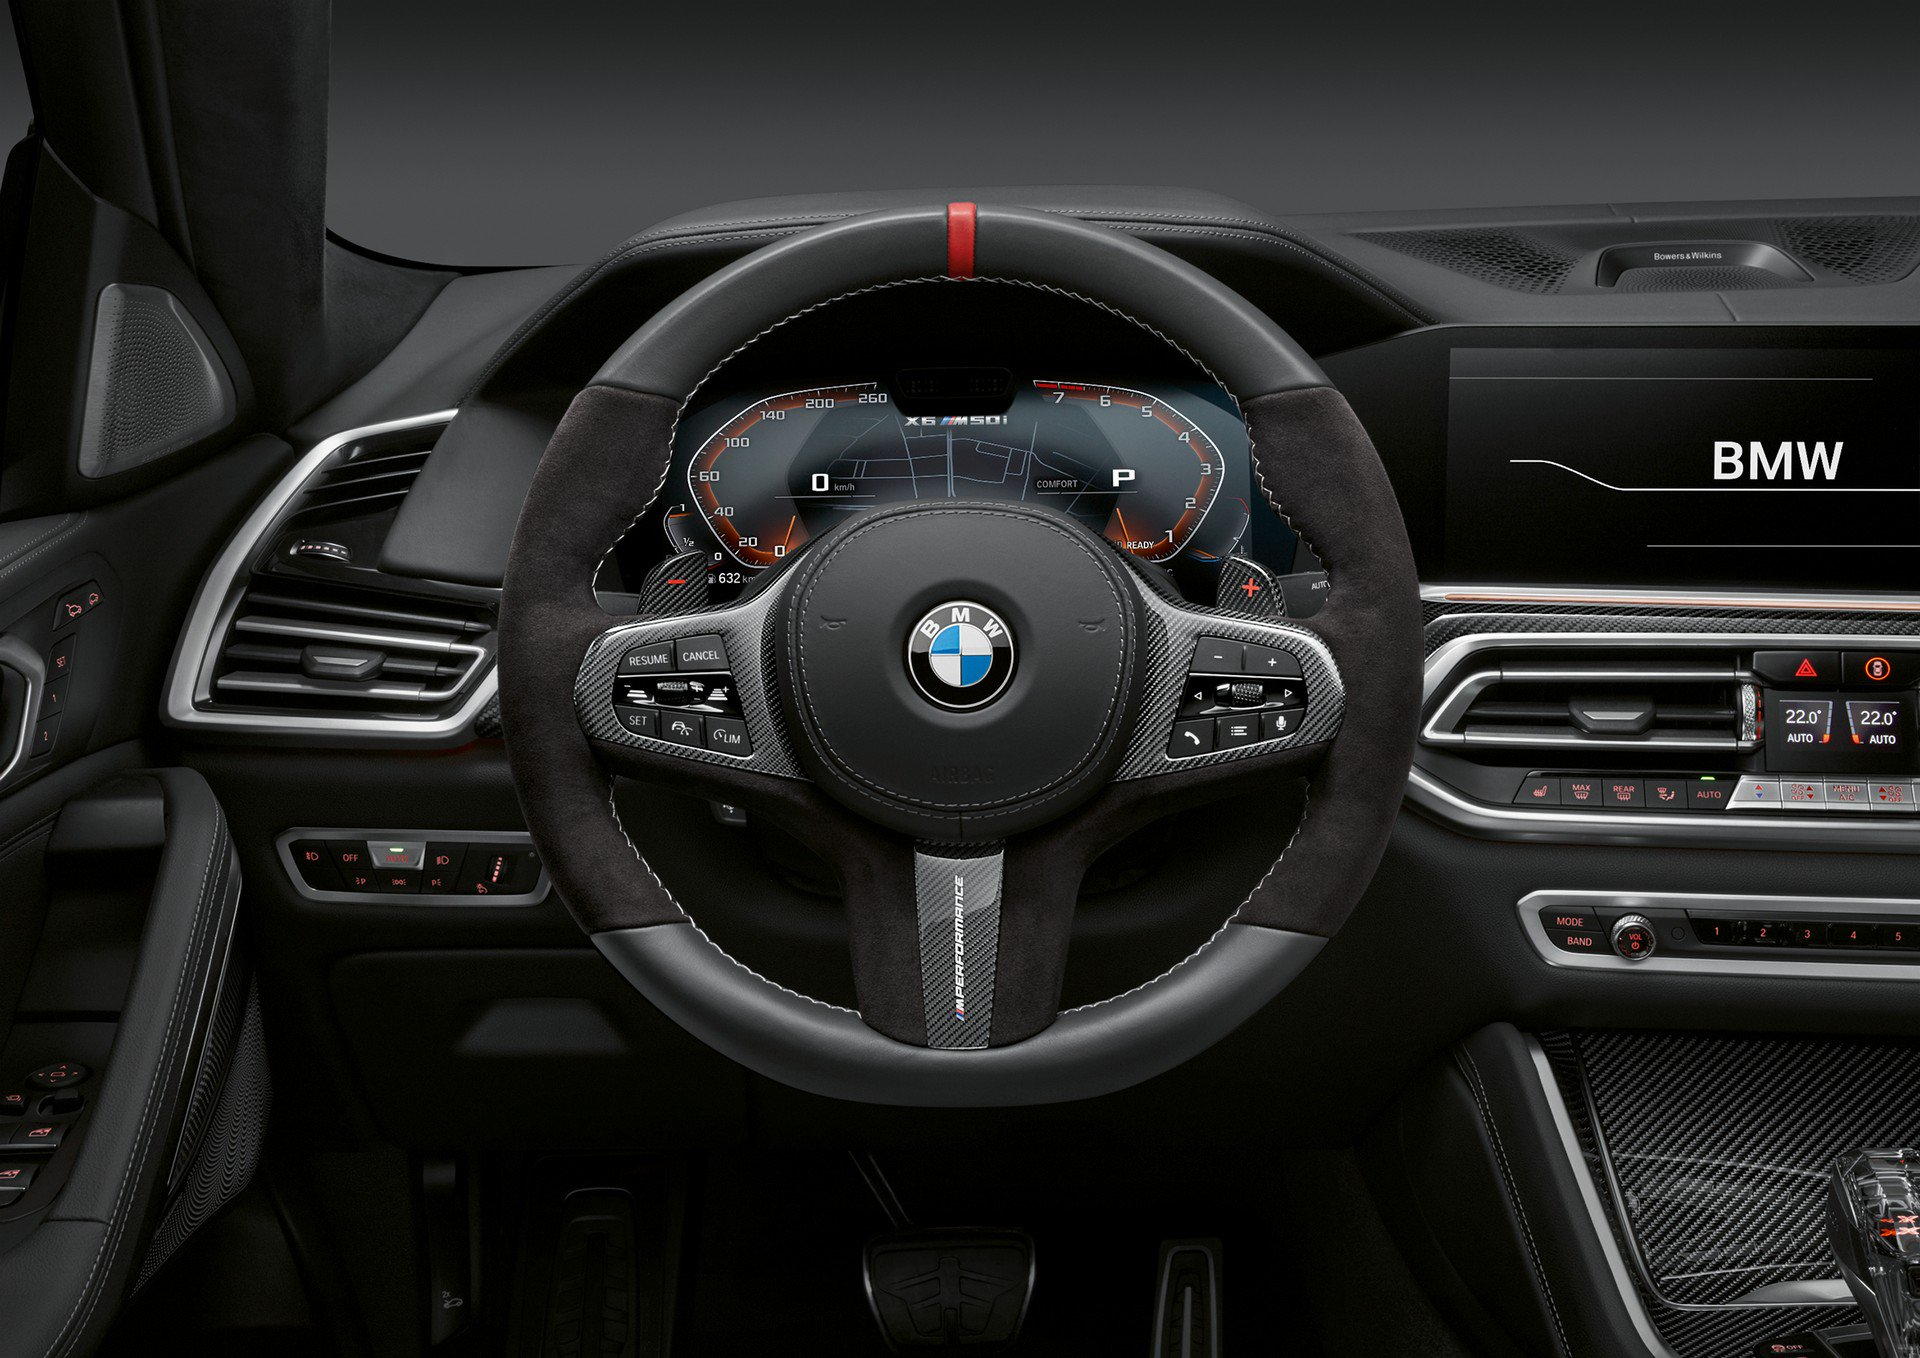 bmw-m-performance-parts-for-x5-x6-m-6.jpg